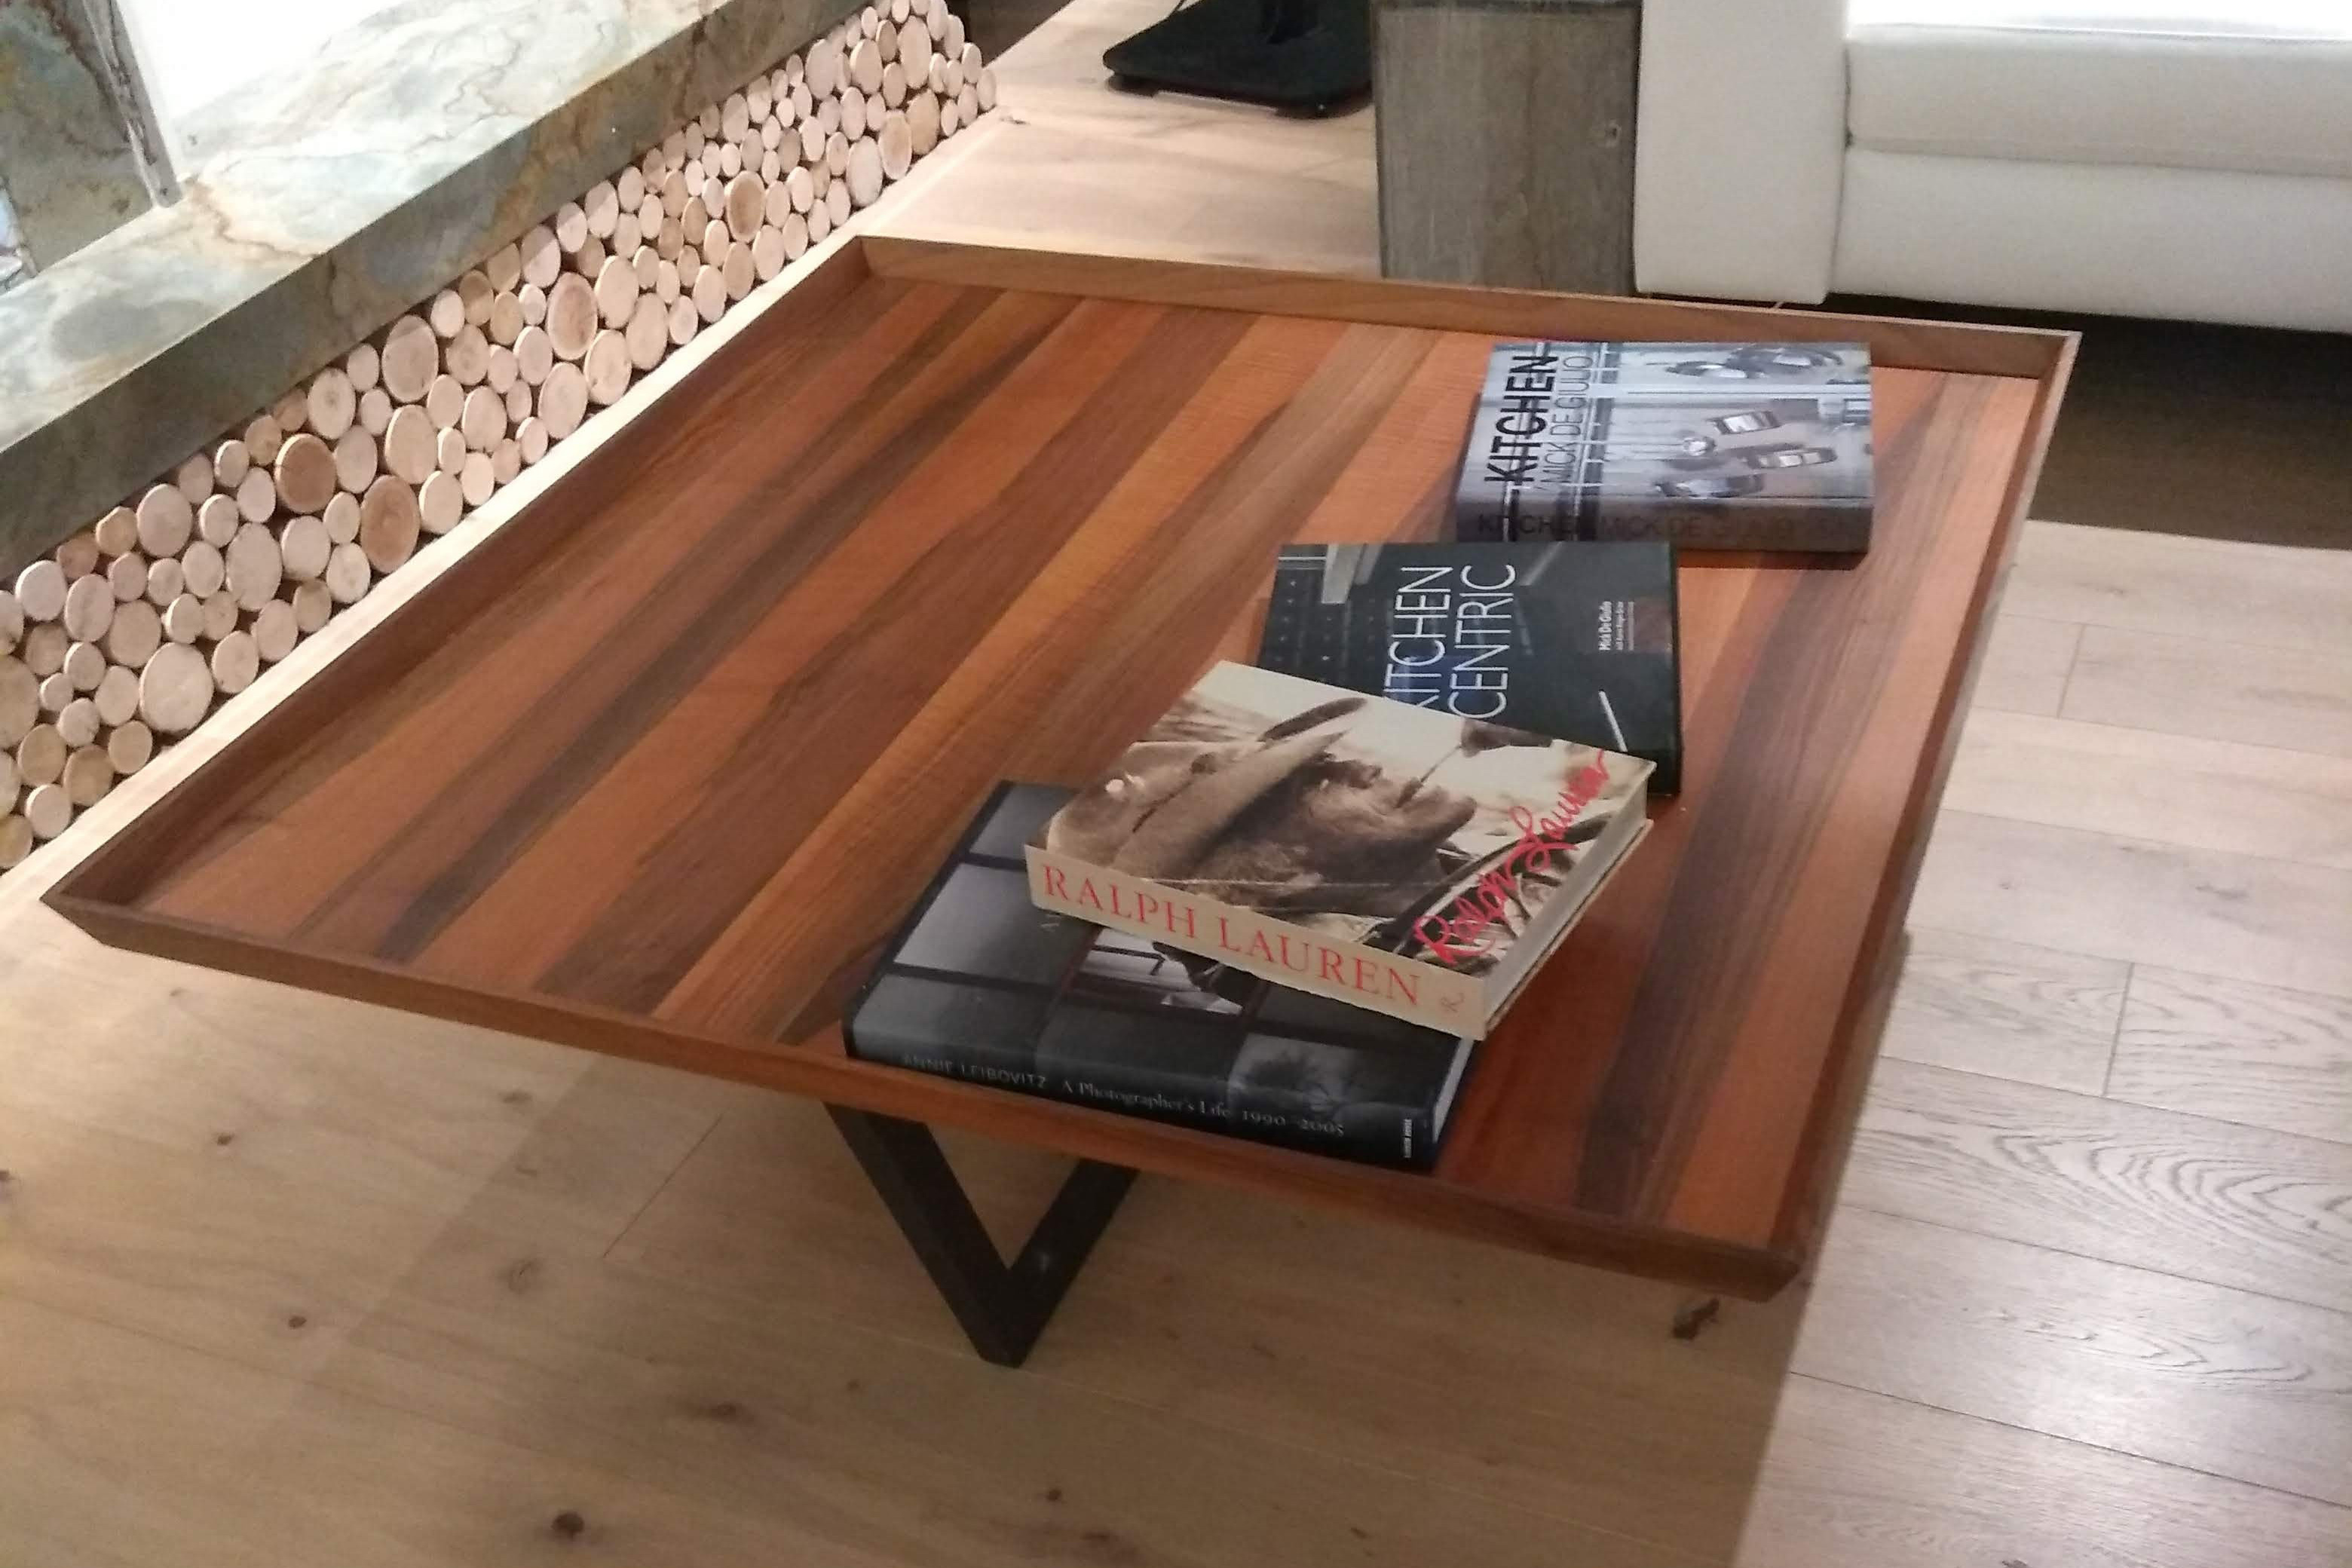 A coffee table from Wood Urban Design